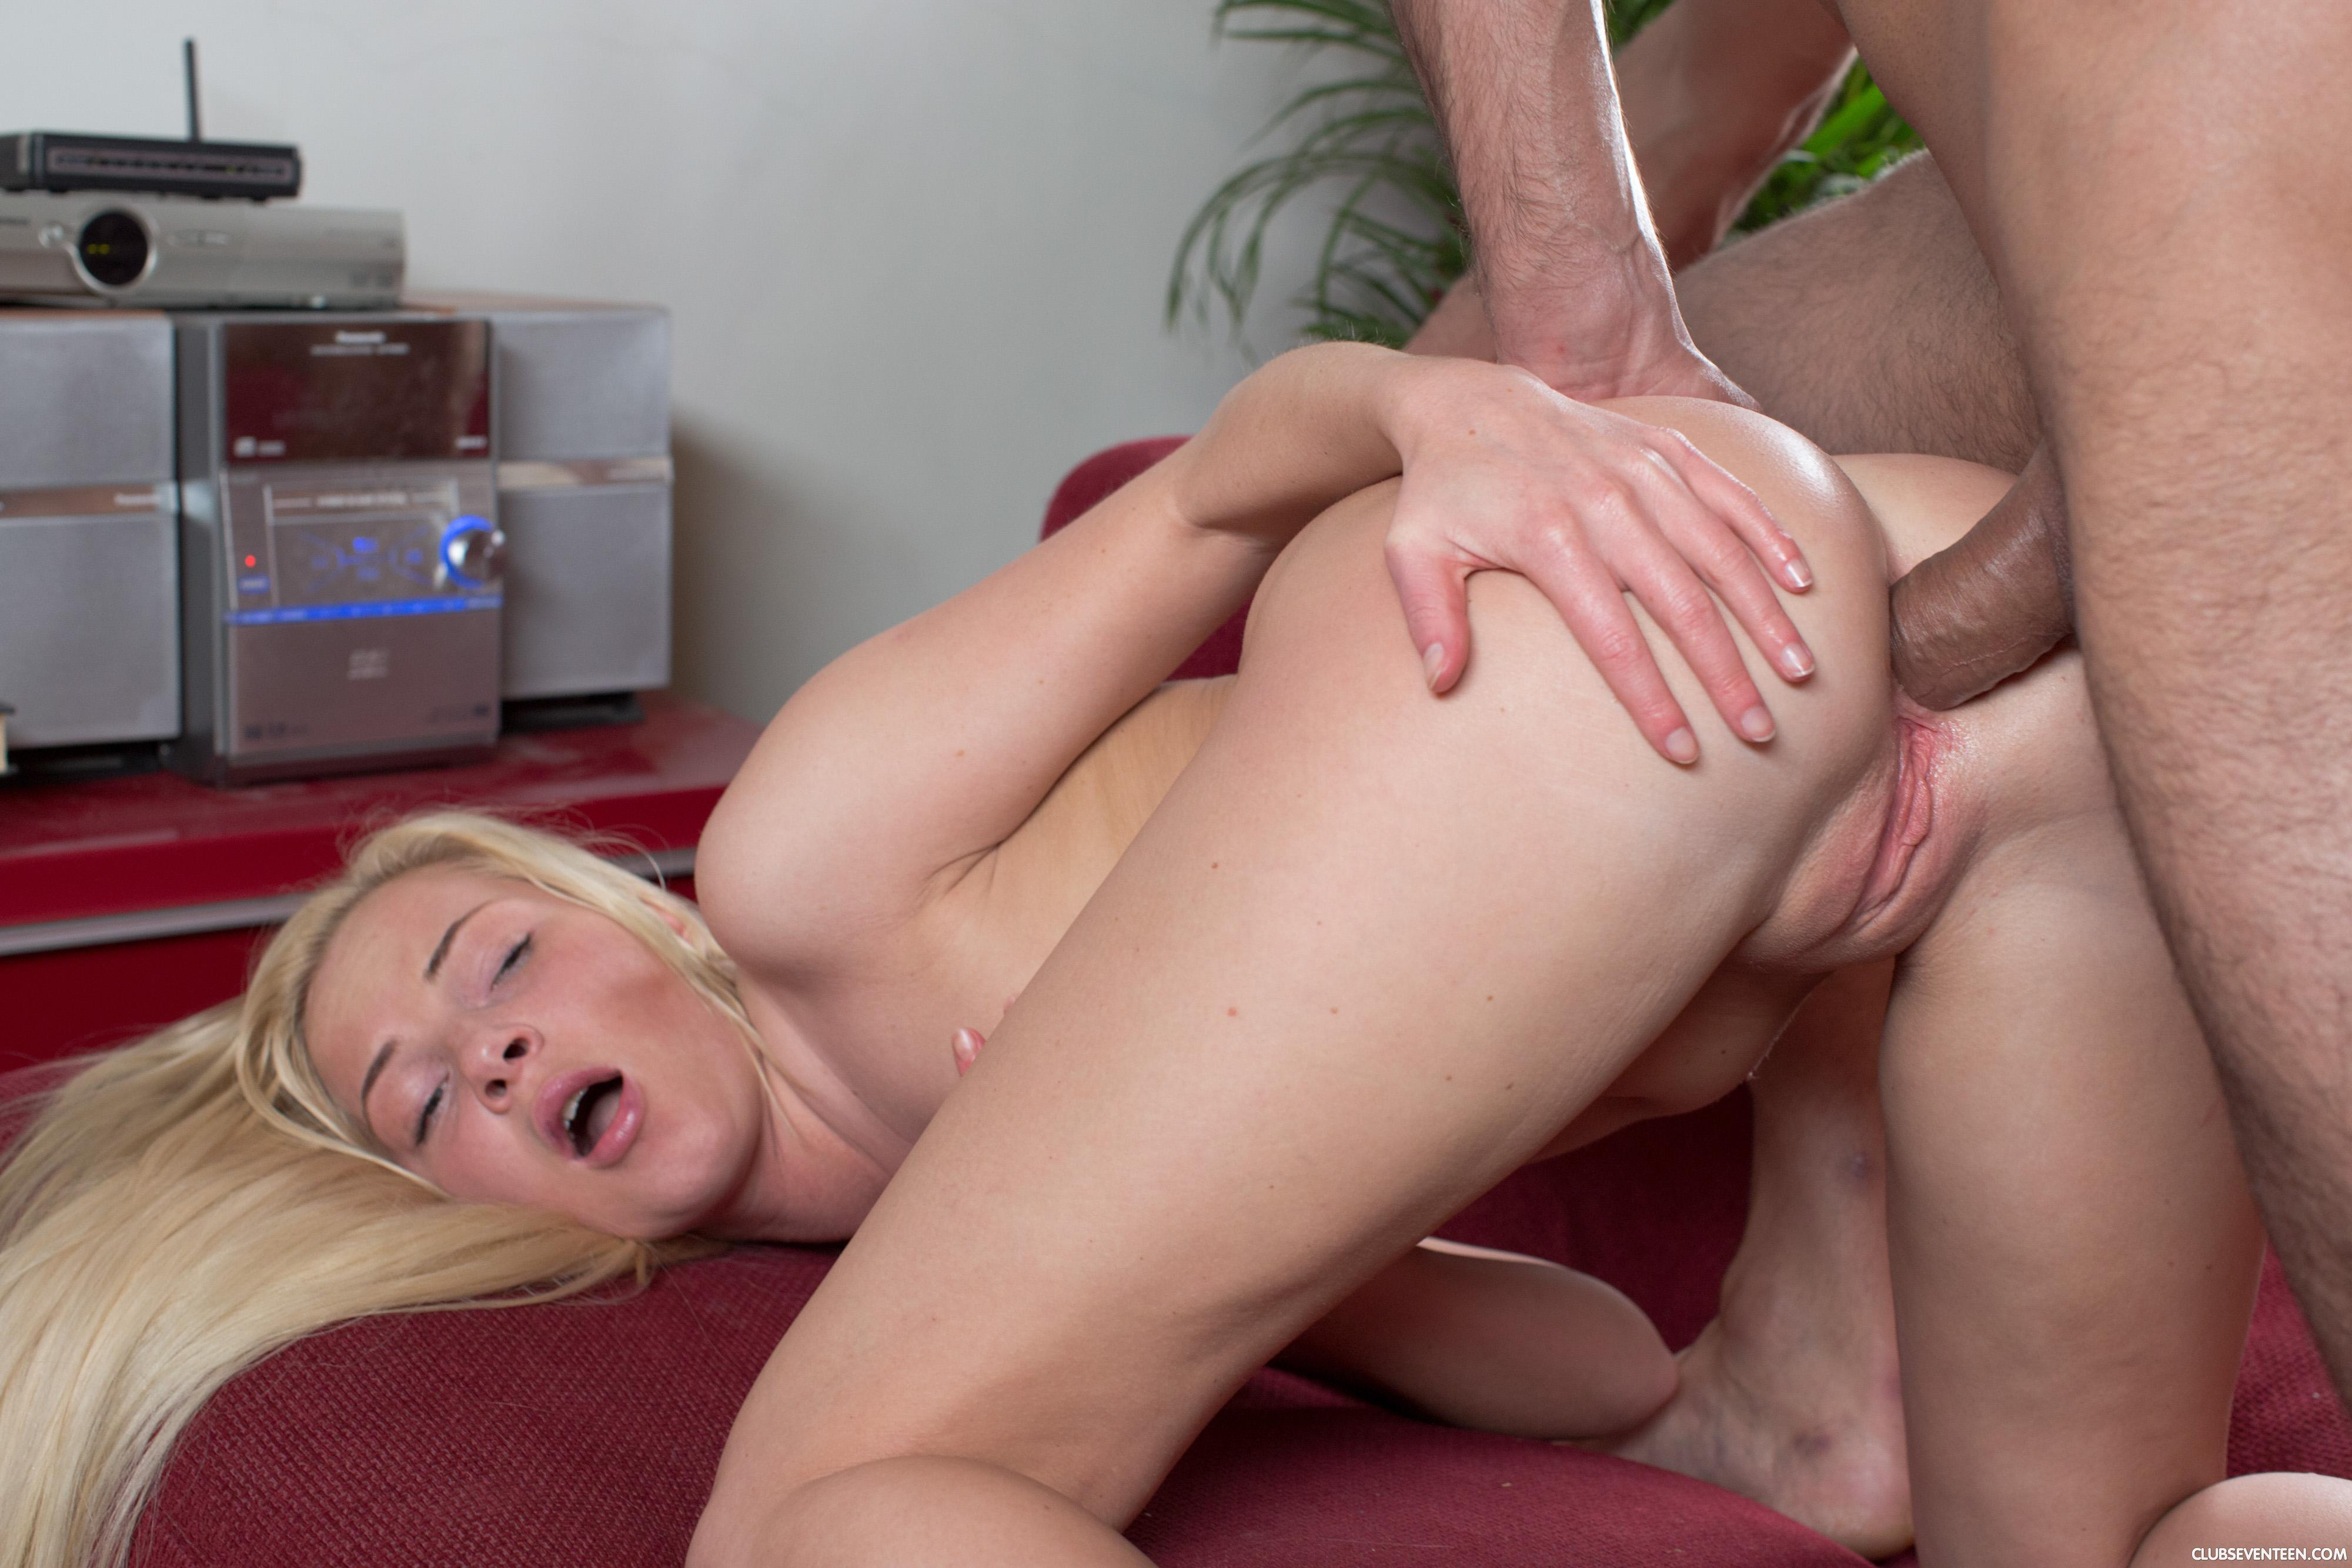 Outdoor real public sex girl fucked by a stranger when upskirt